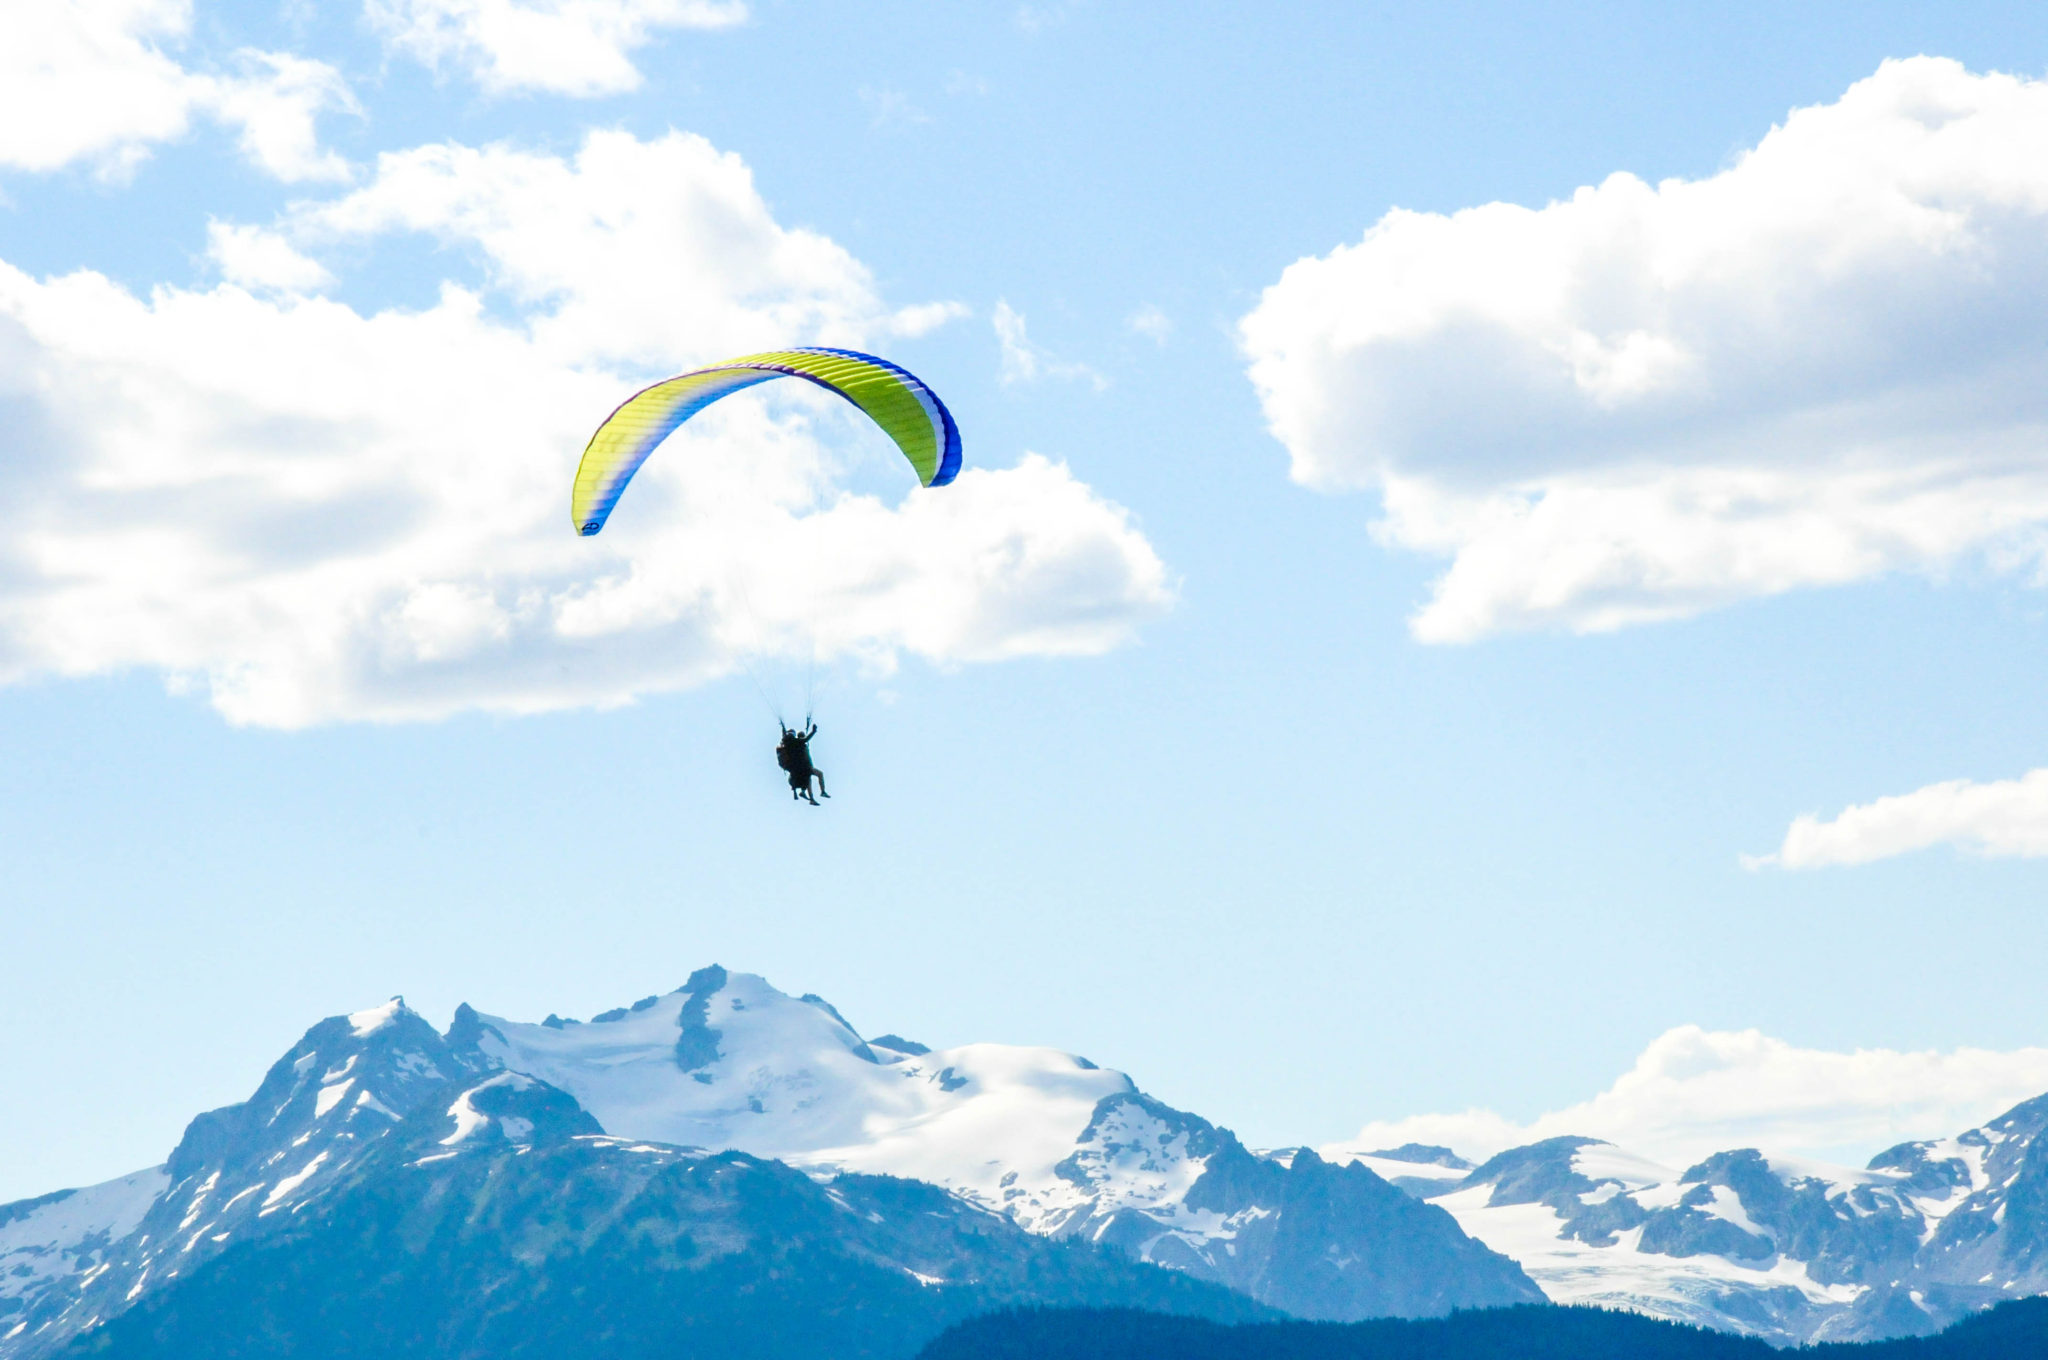 Sea to Sky Paragliding – Paragliding School and tandem